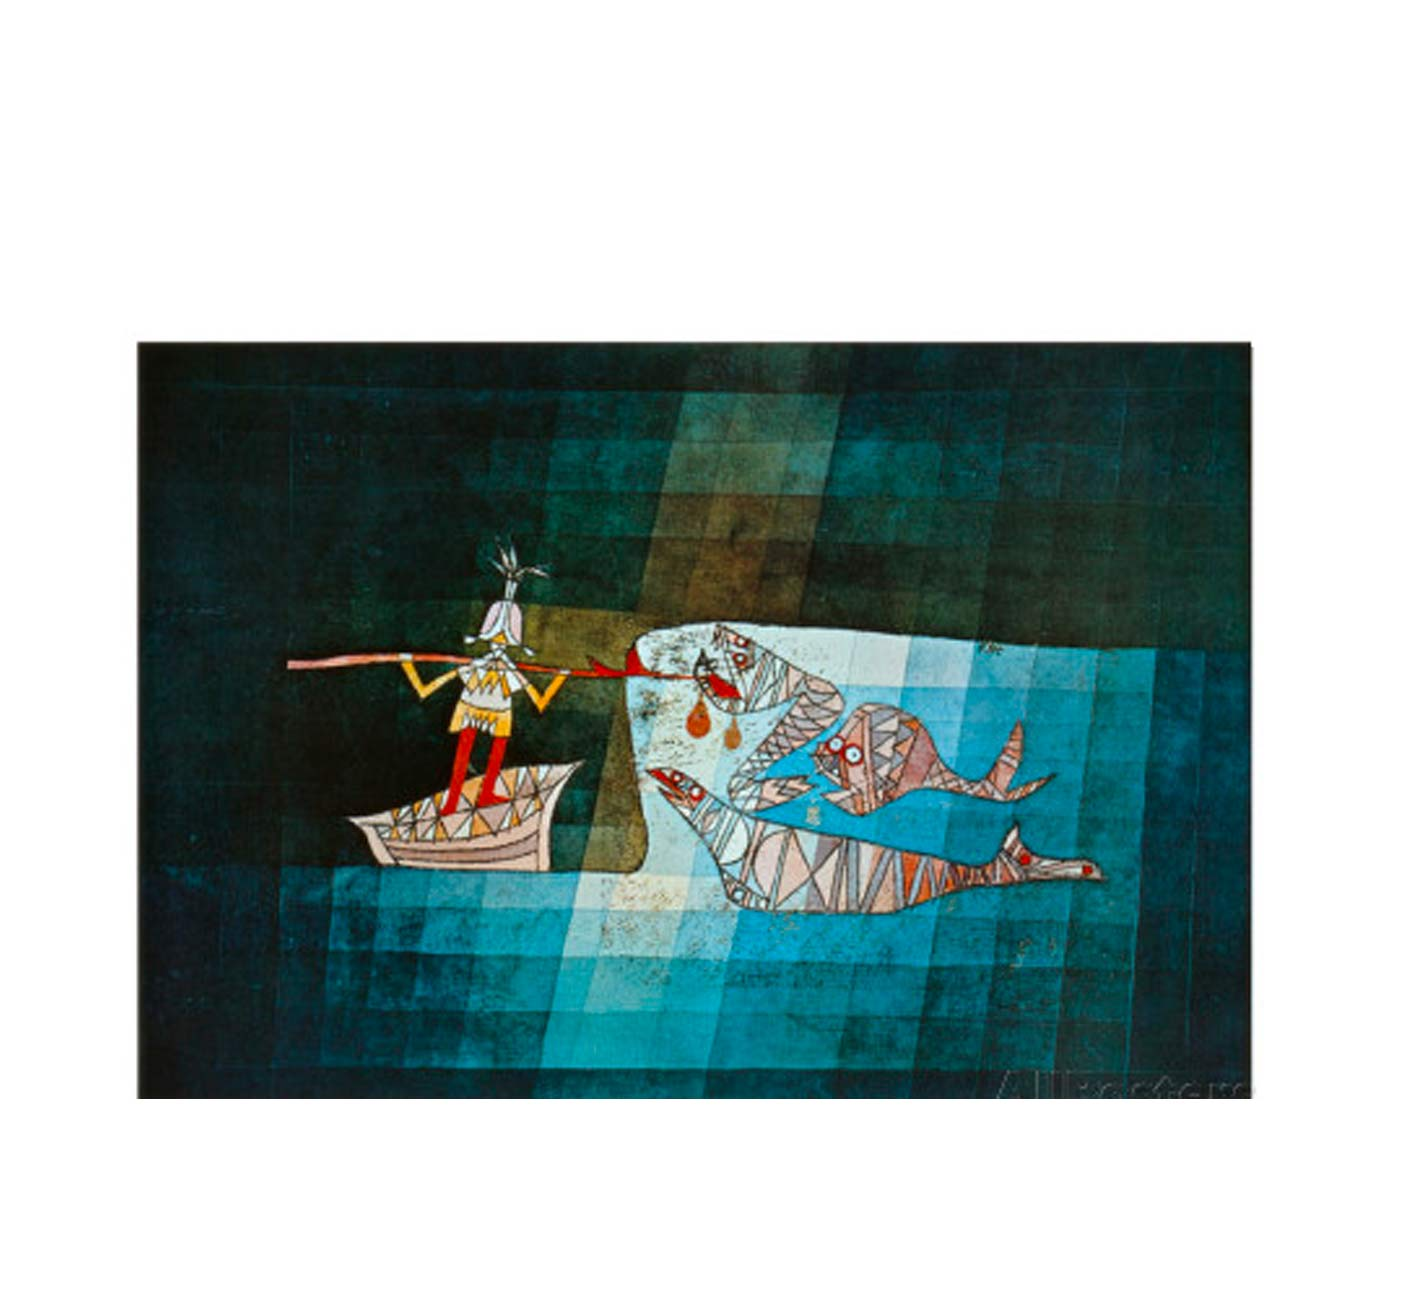 Paul Klee, Sinbad the Sailor